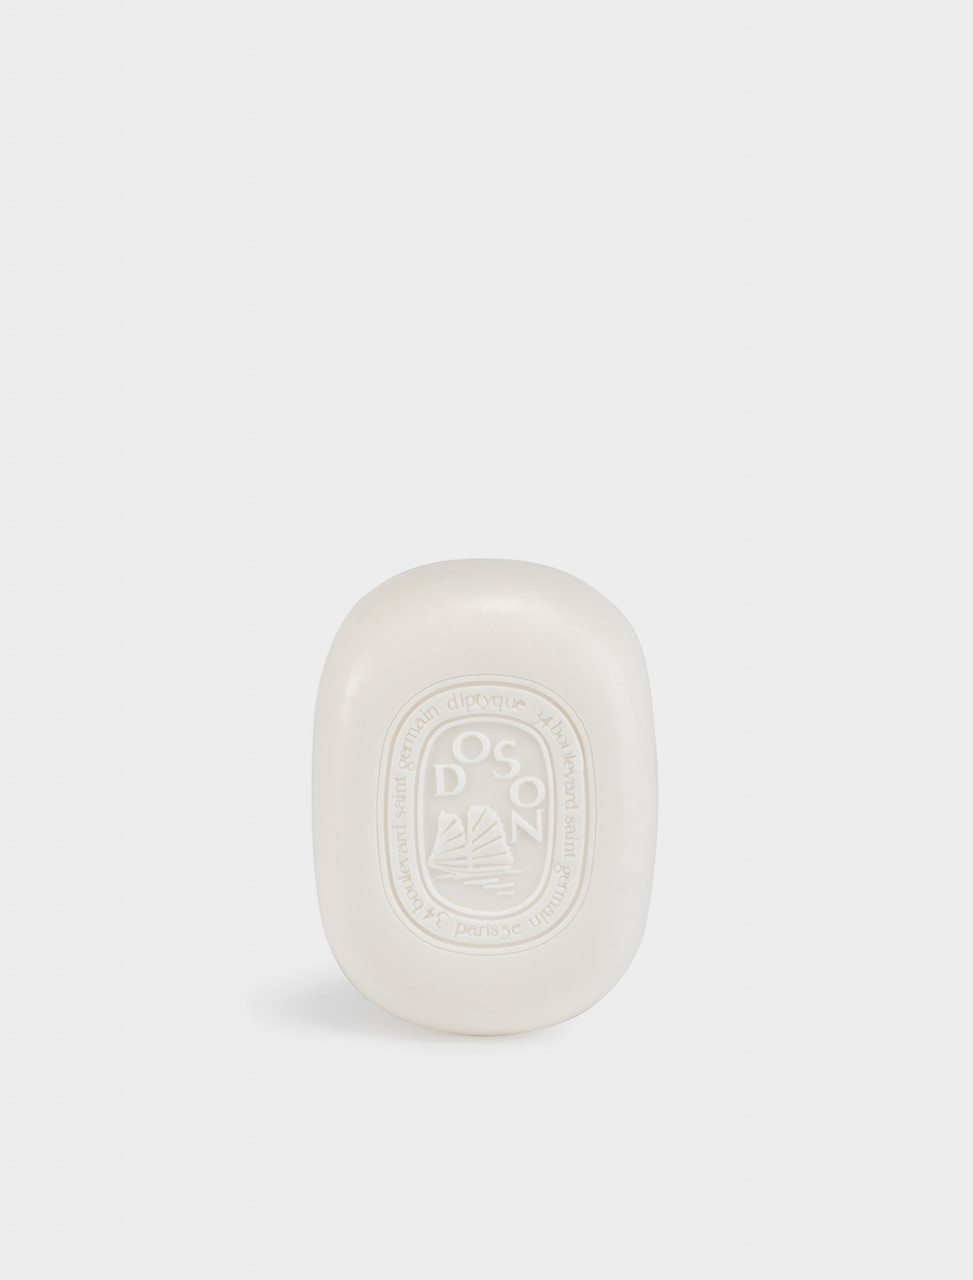 337-SOAPDOSON DIPTYQUE DO SON SOAP